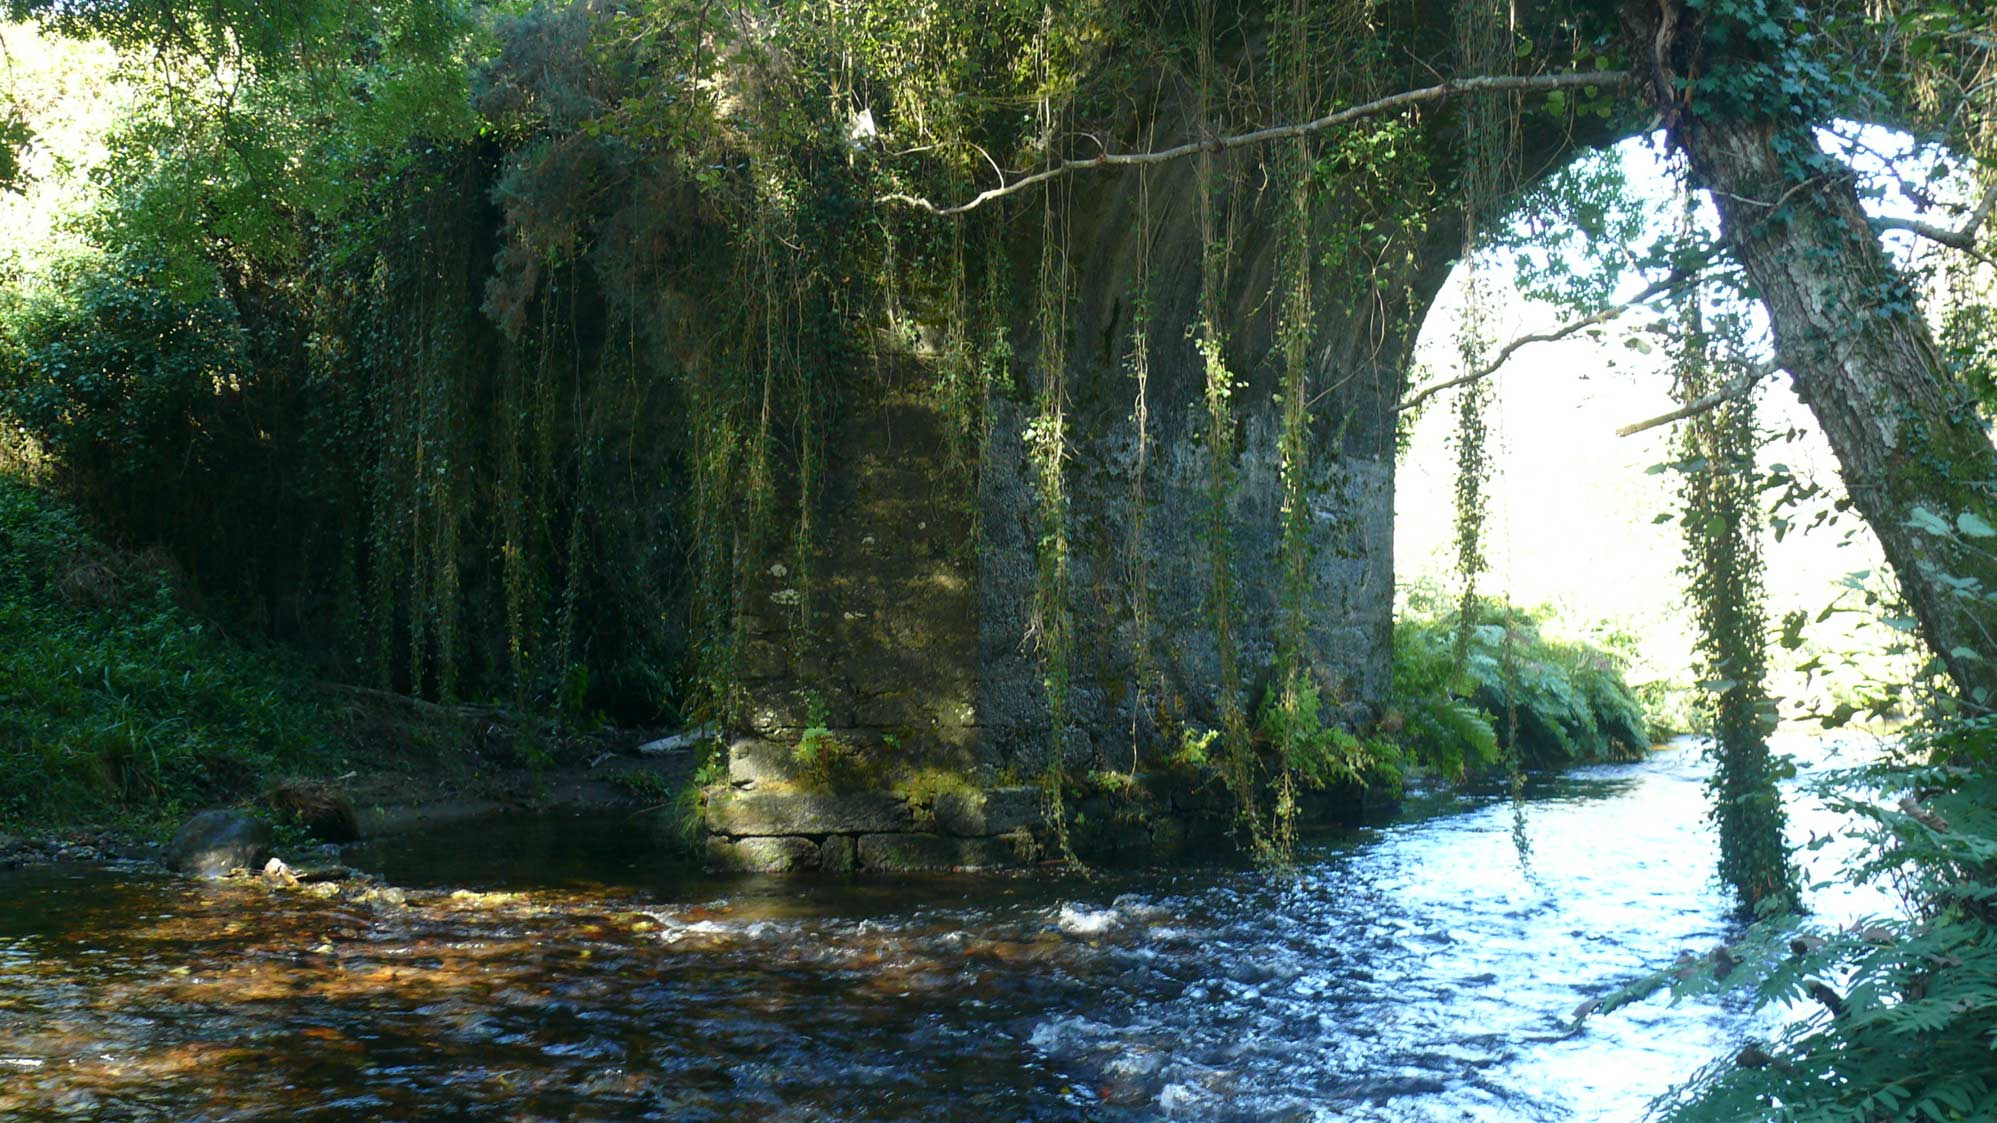 Stone bridge over Mera